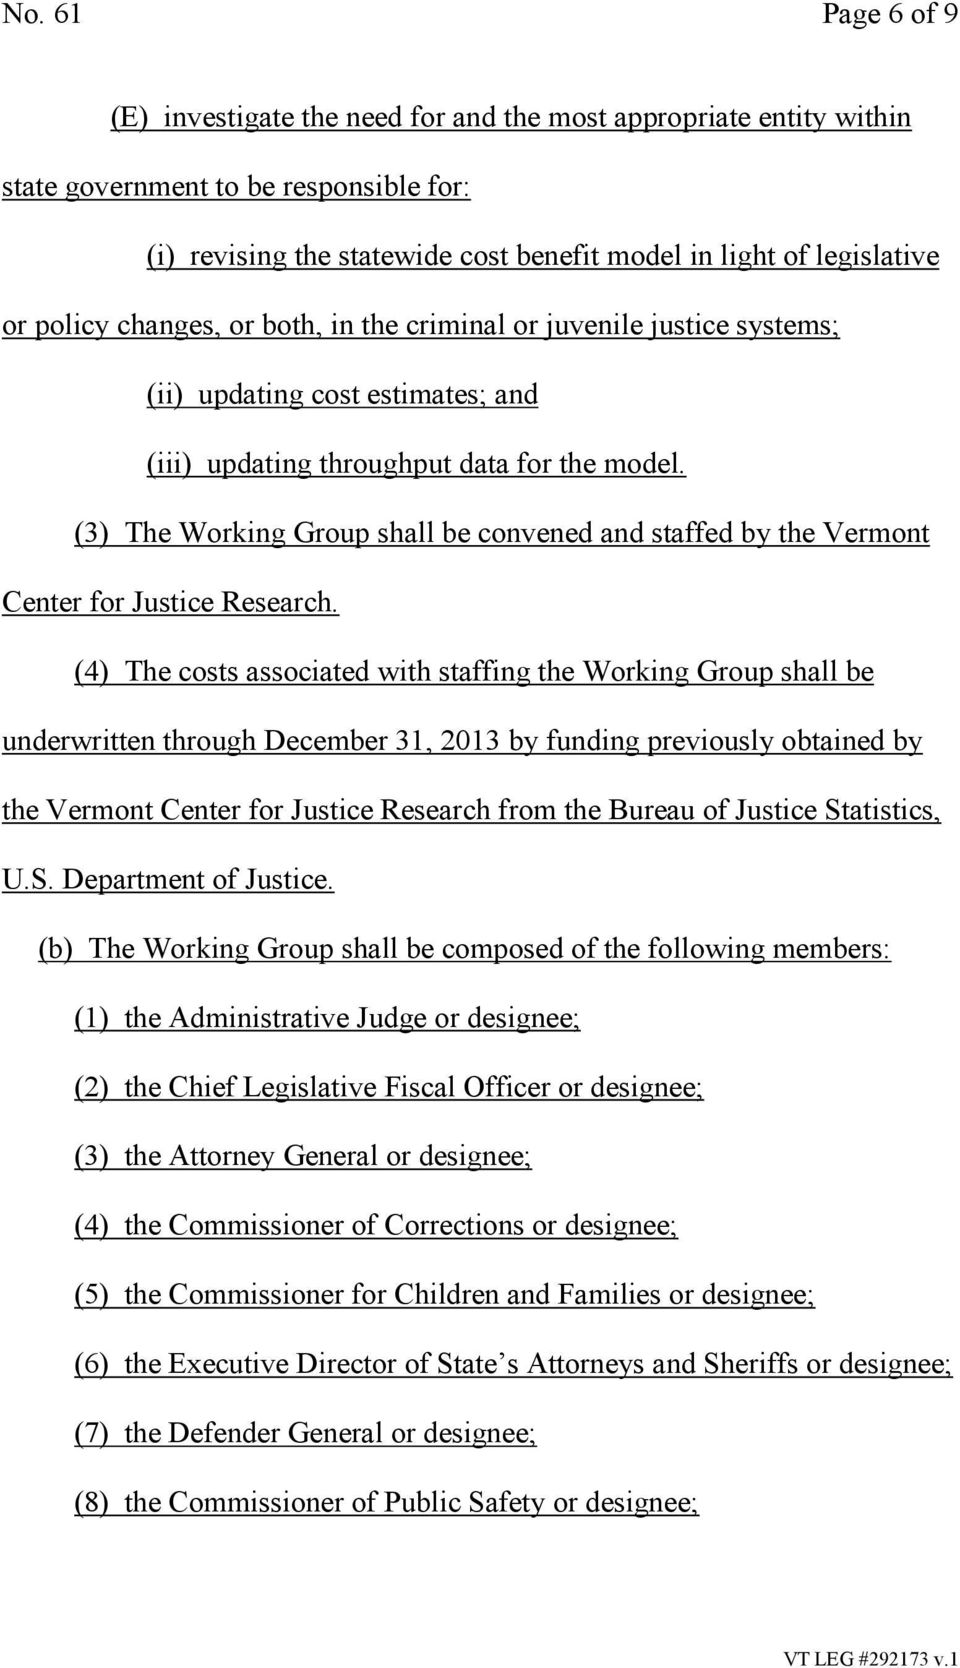 (3) The Working Group shall be convened and staffed by the Vermont Center for Justice Research.